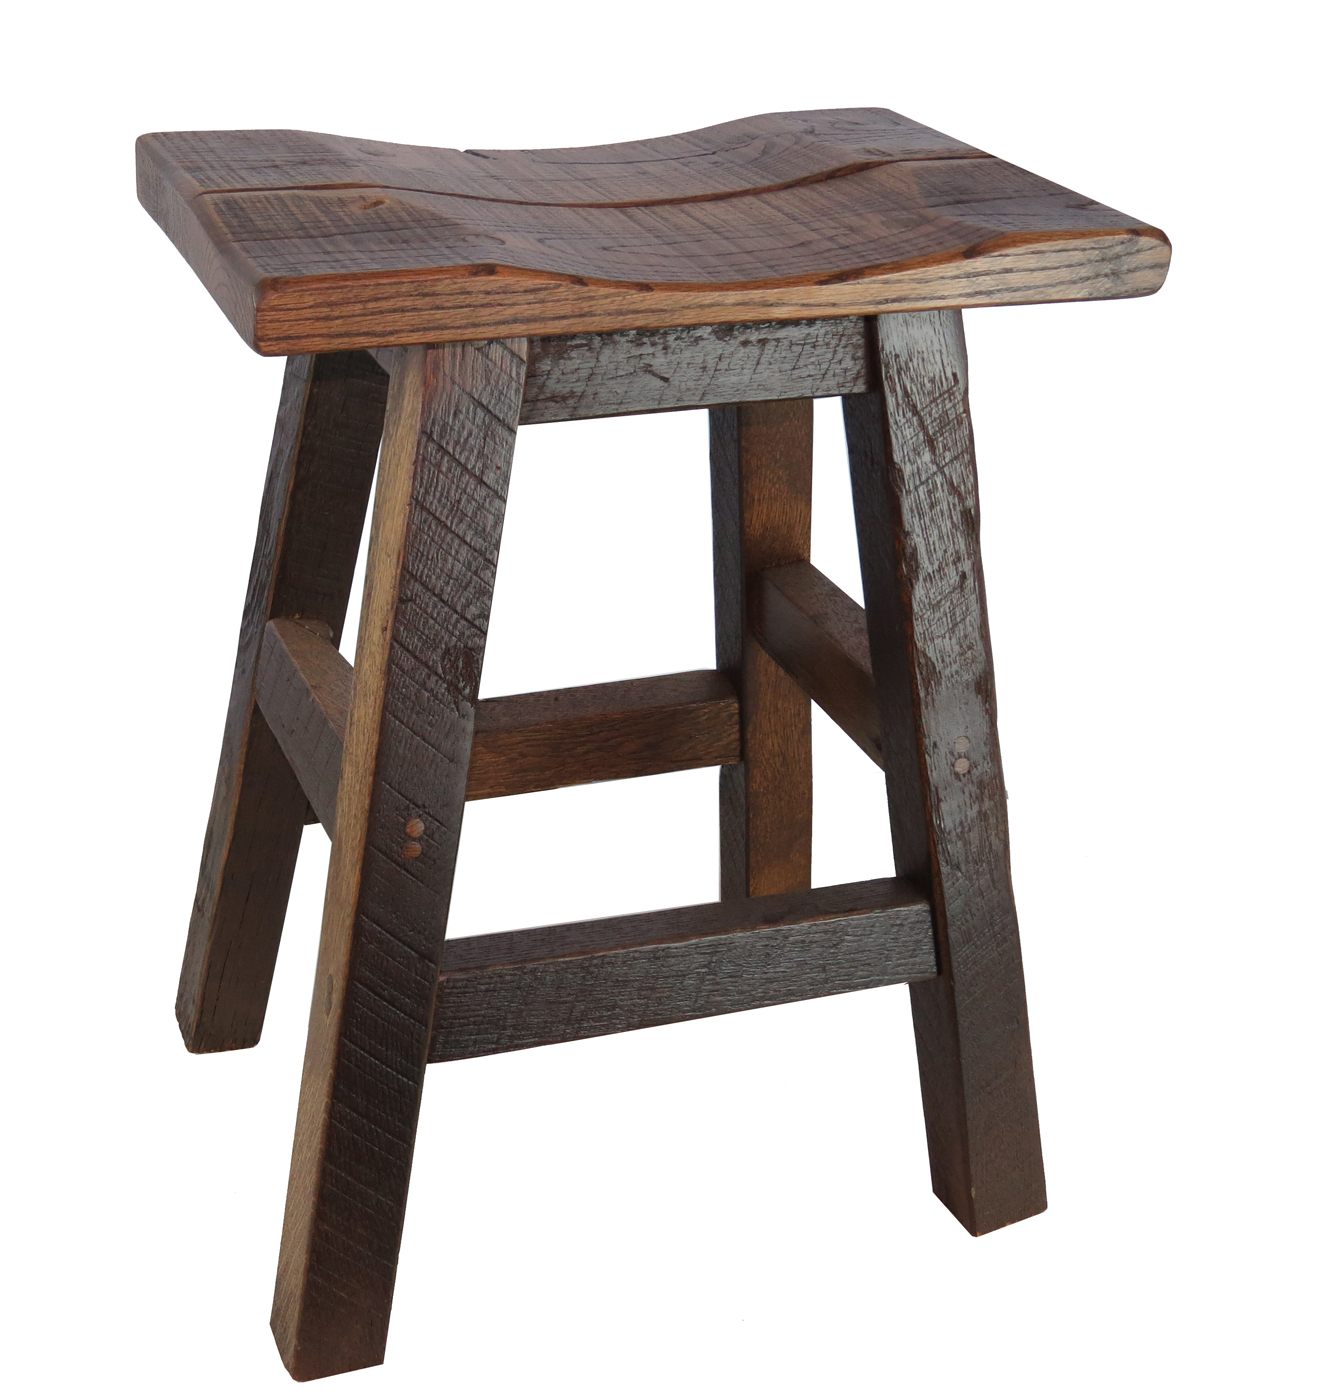 Barnwood bar stools 24 inch backless for 24 inch bar stools